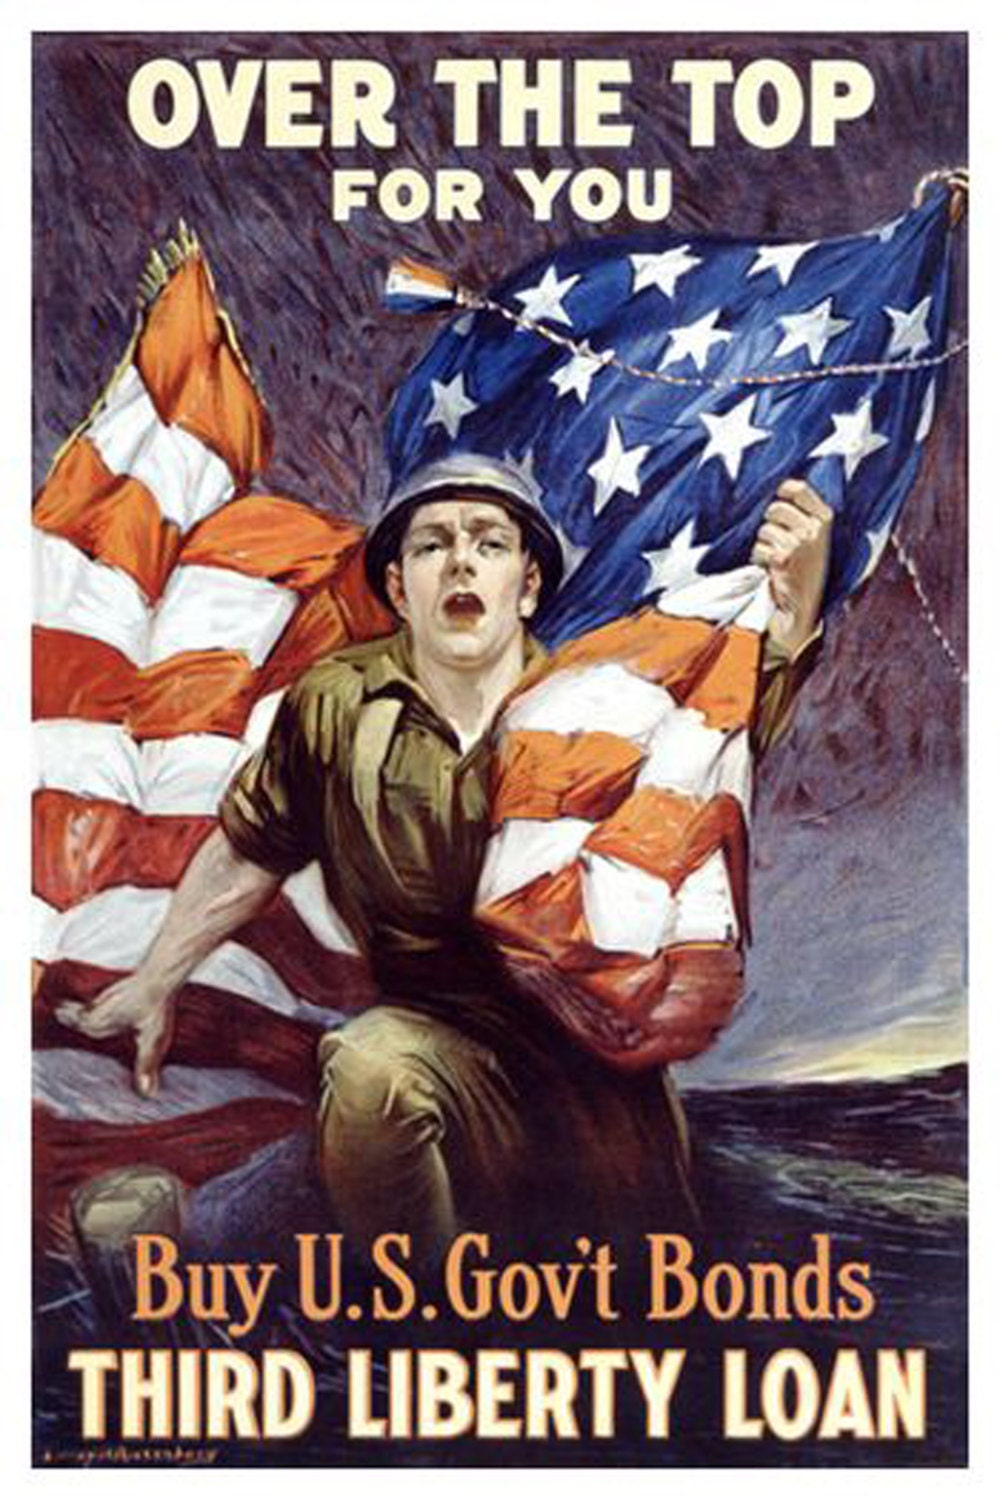 Vintage american advertising posters and labels images for Classic american images